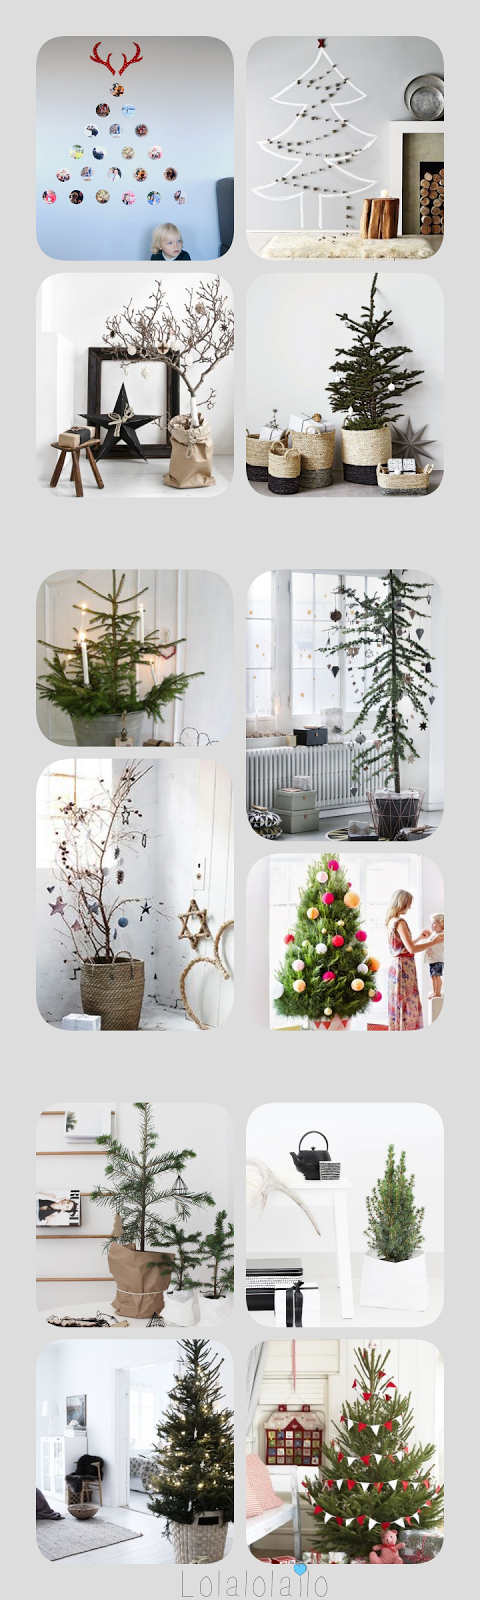 Lolalolailo blog ideas para decorar tu casa en navidad for Ideas para tu casa decoracion